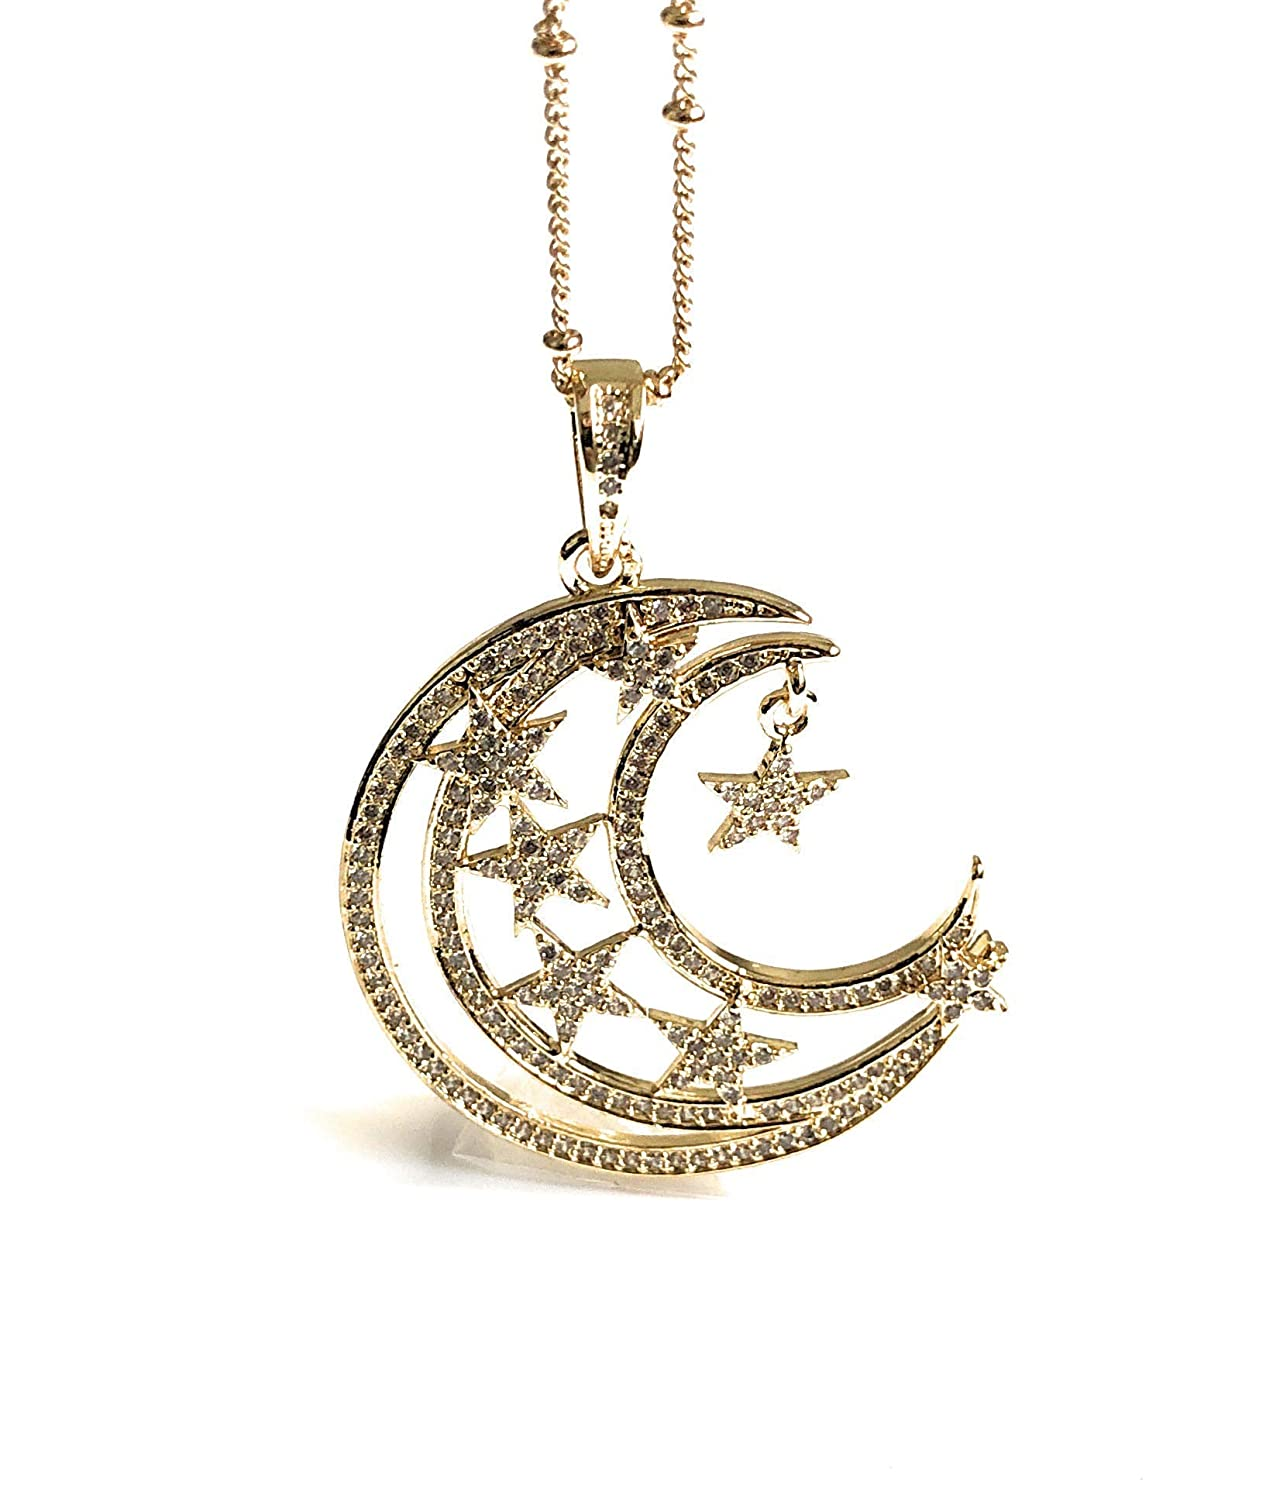 Crescent moon pendant necklace moon and stars 17.5 inches gold disc medallion layer necklace rock crystal drop